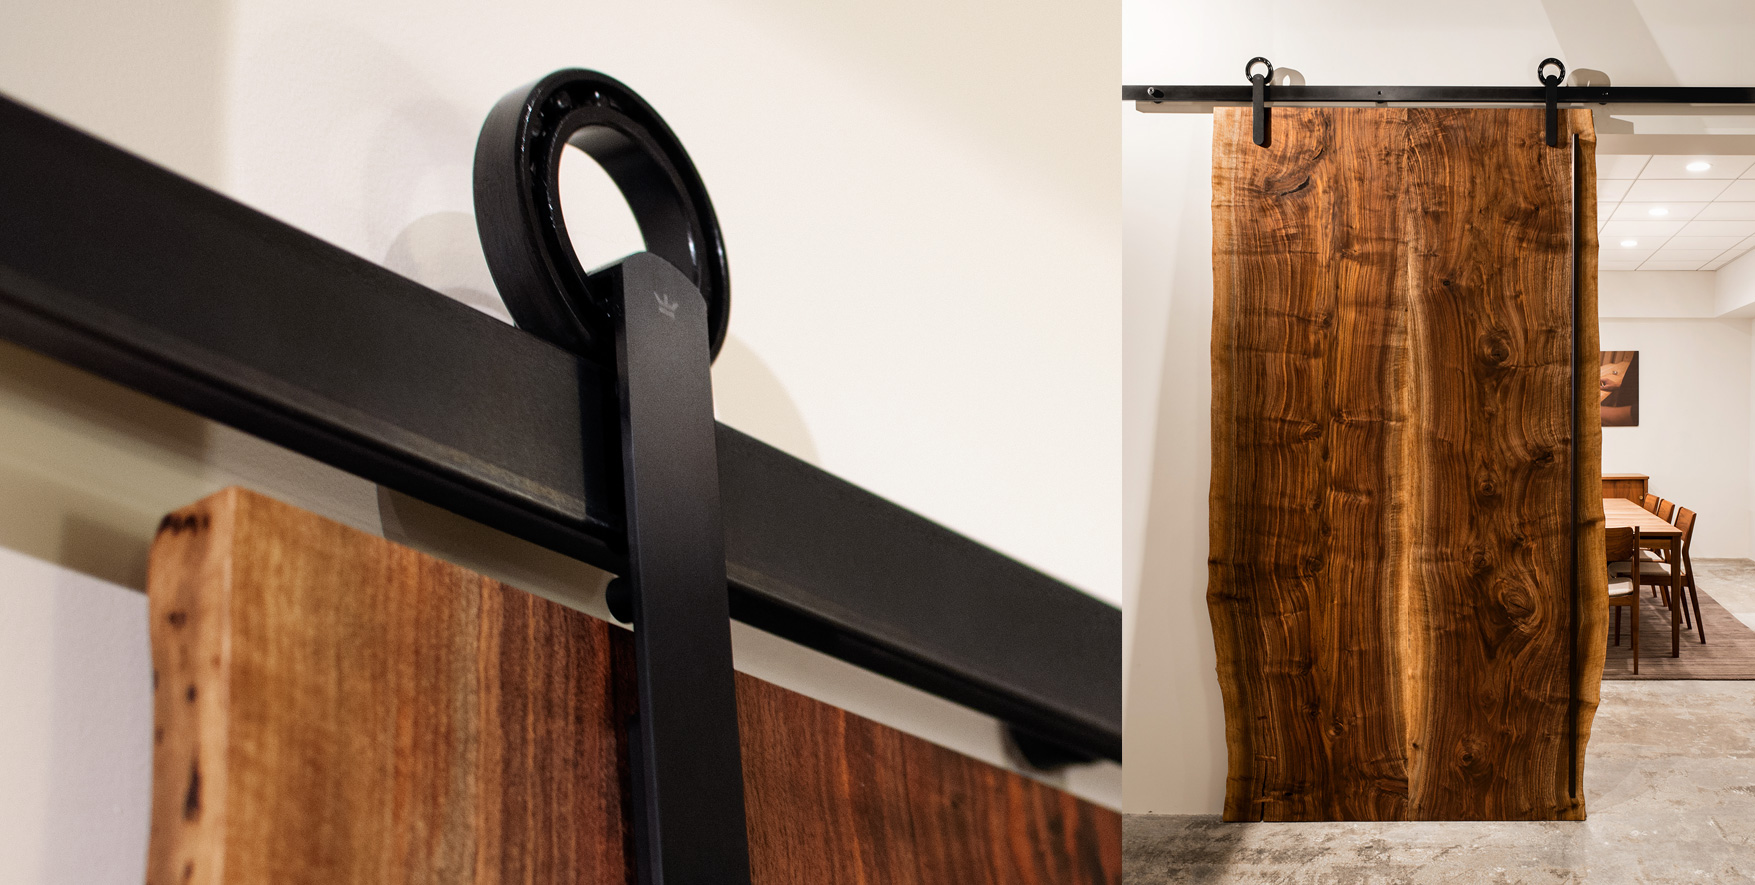 The Baldur sliding door hardware system paired with a live-edge sliding door panel.